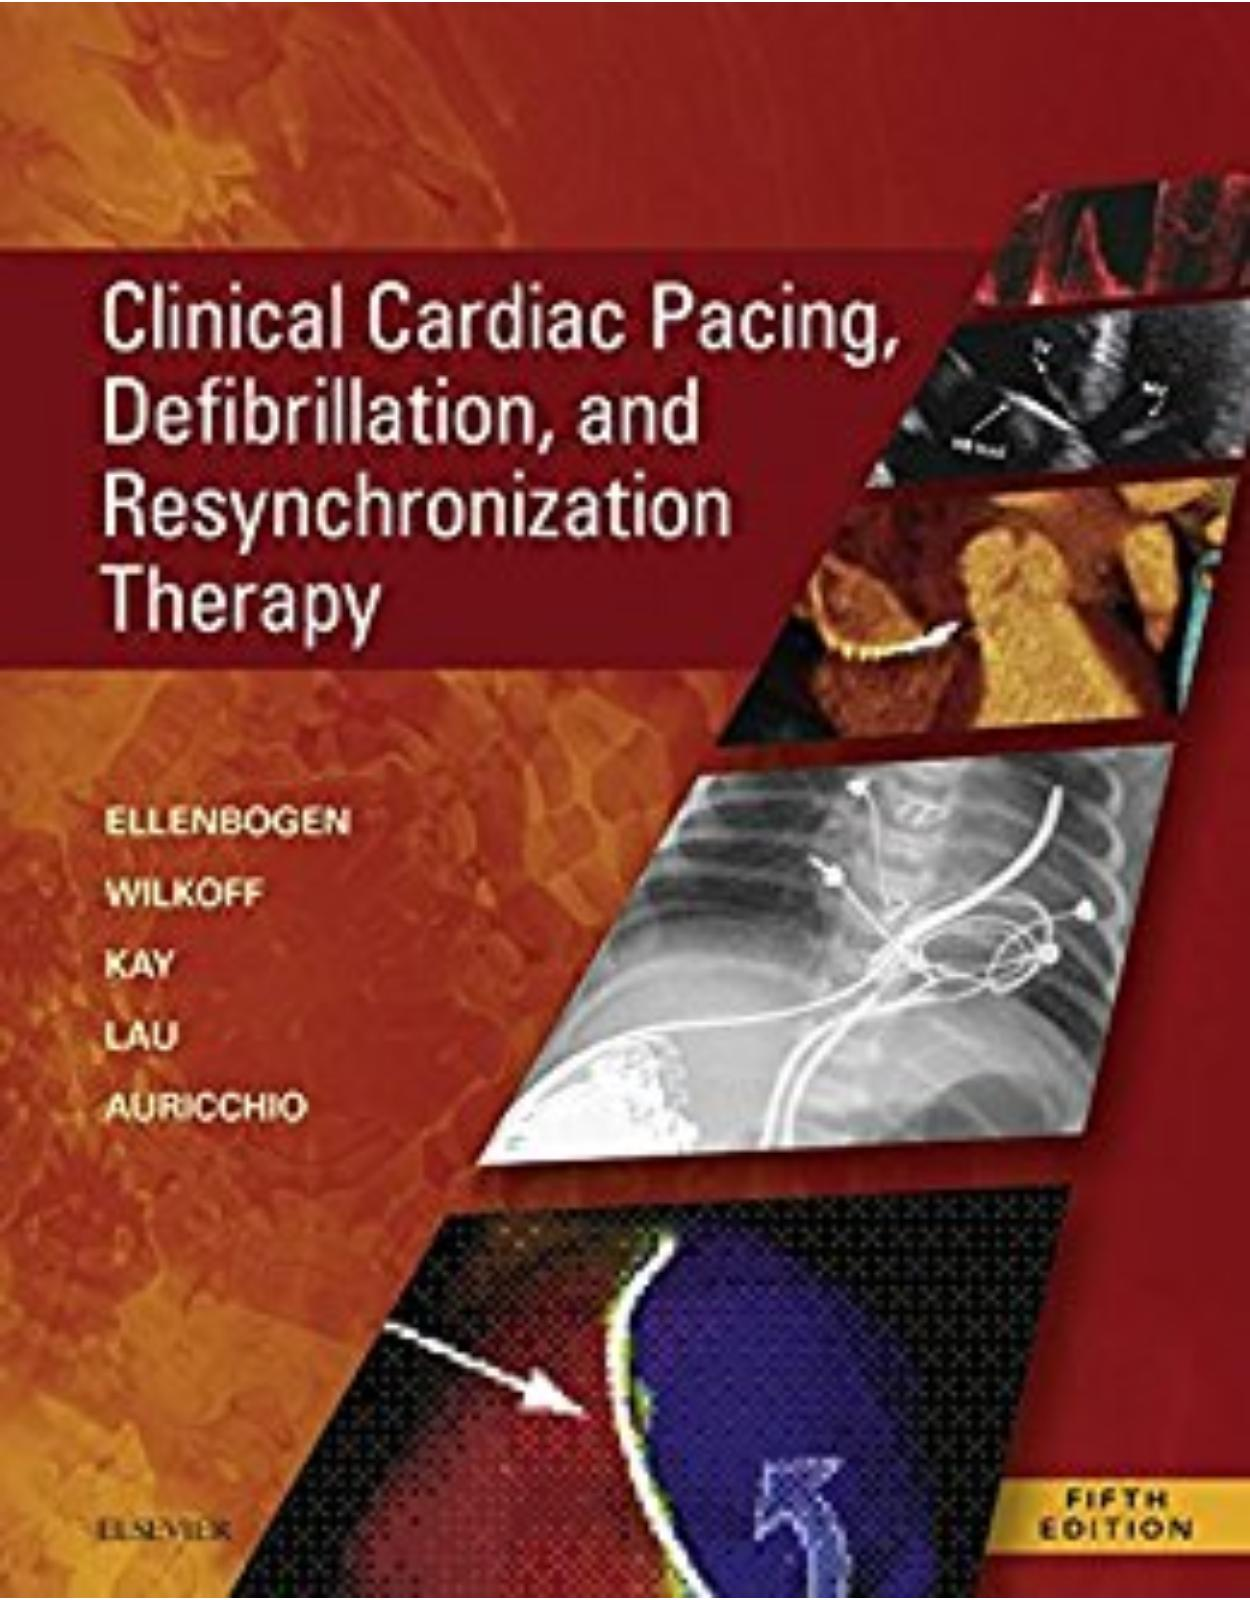 Clinical Cardiac Pacing, Defibrillation and Resynchronization Therapy, 5th Edition